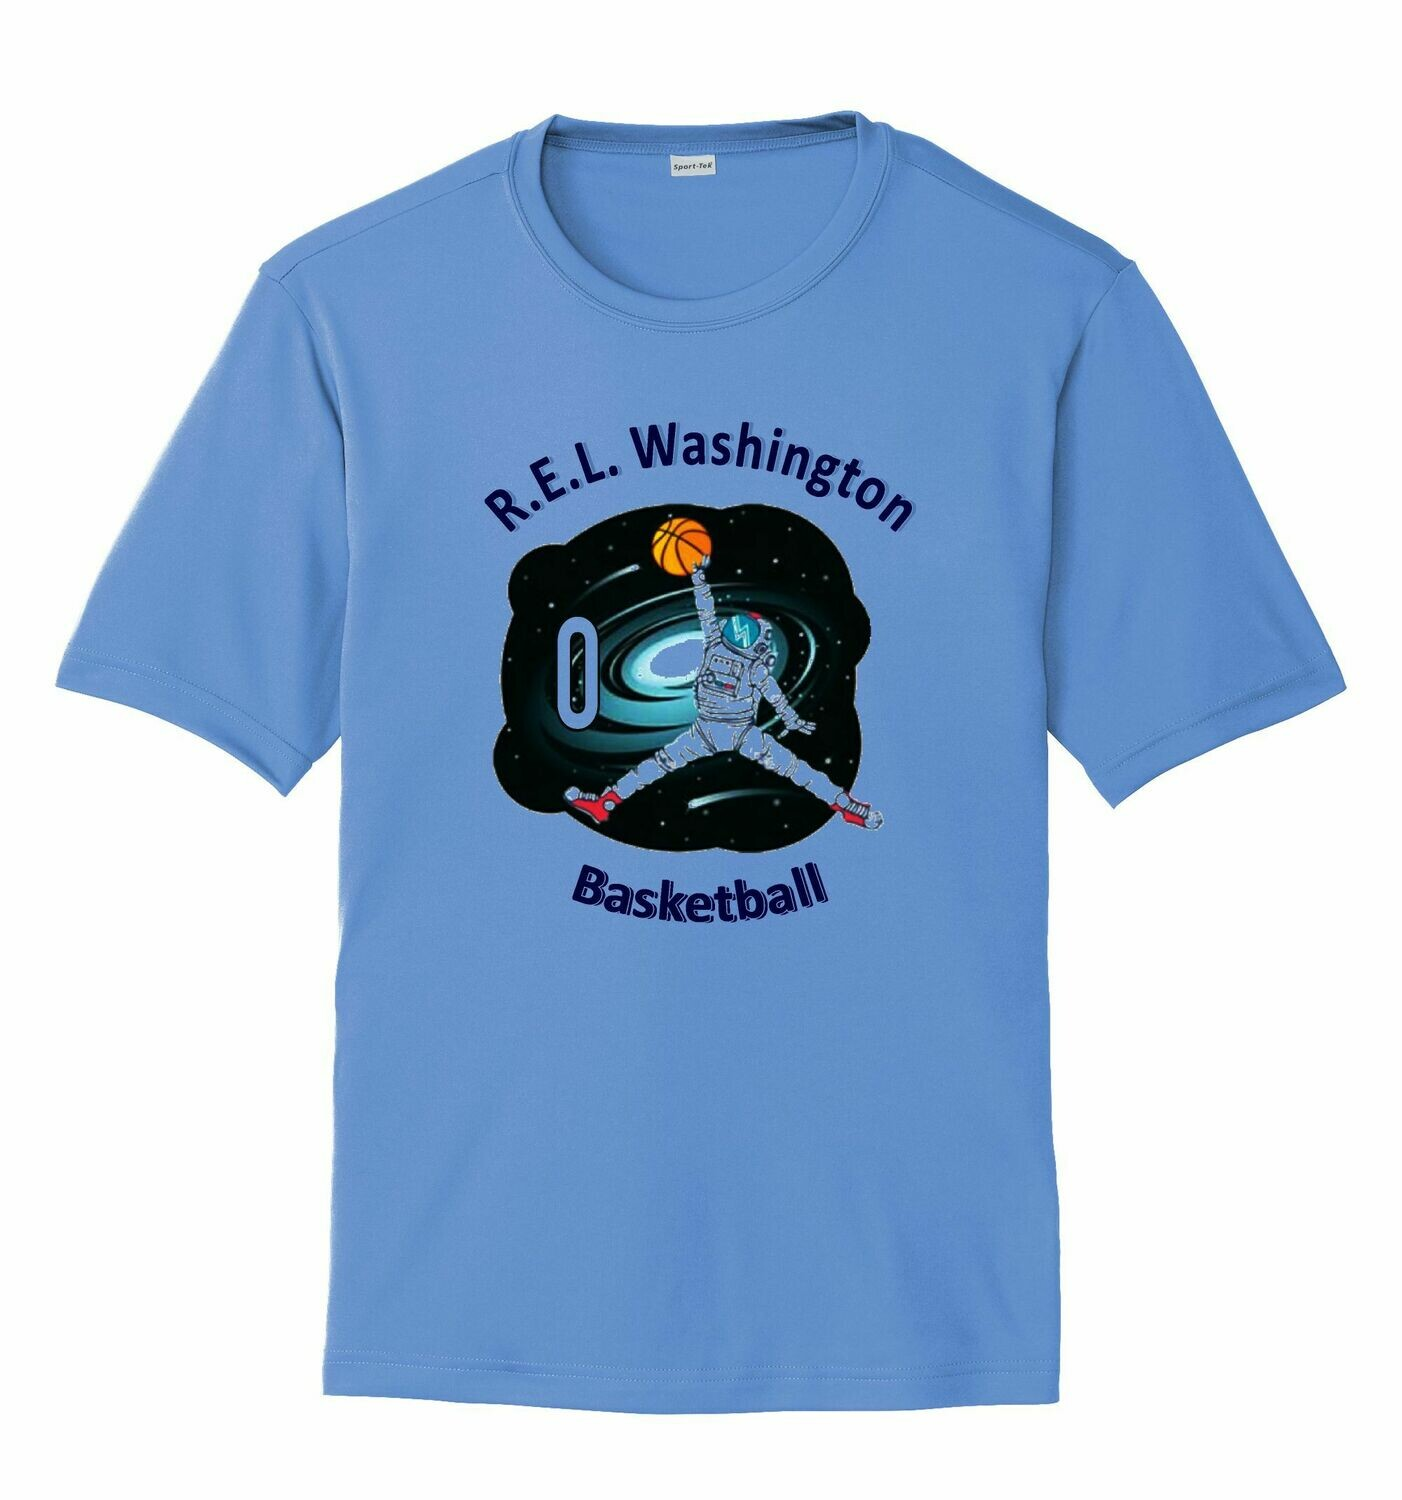 R.E.L. Washington Fan Shirts